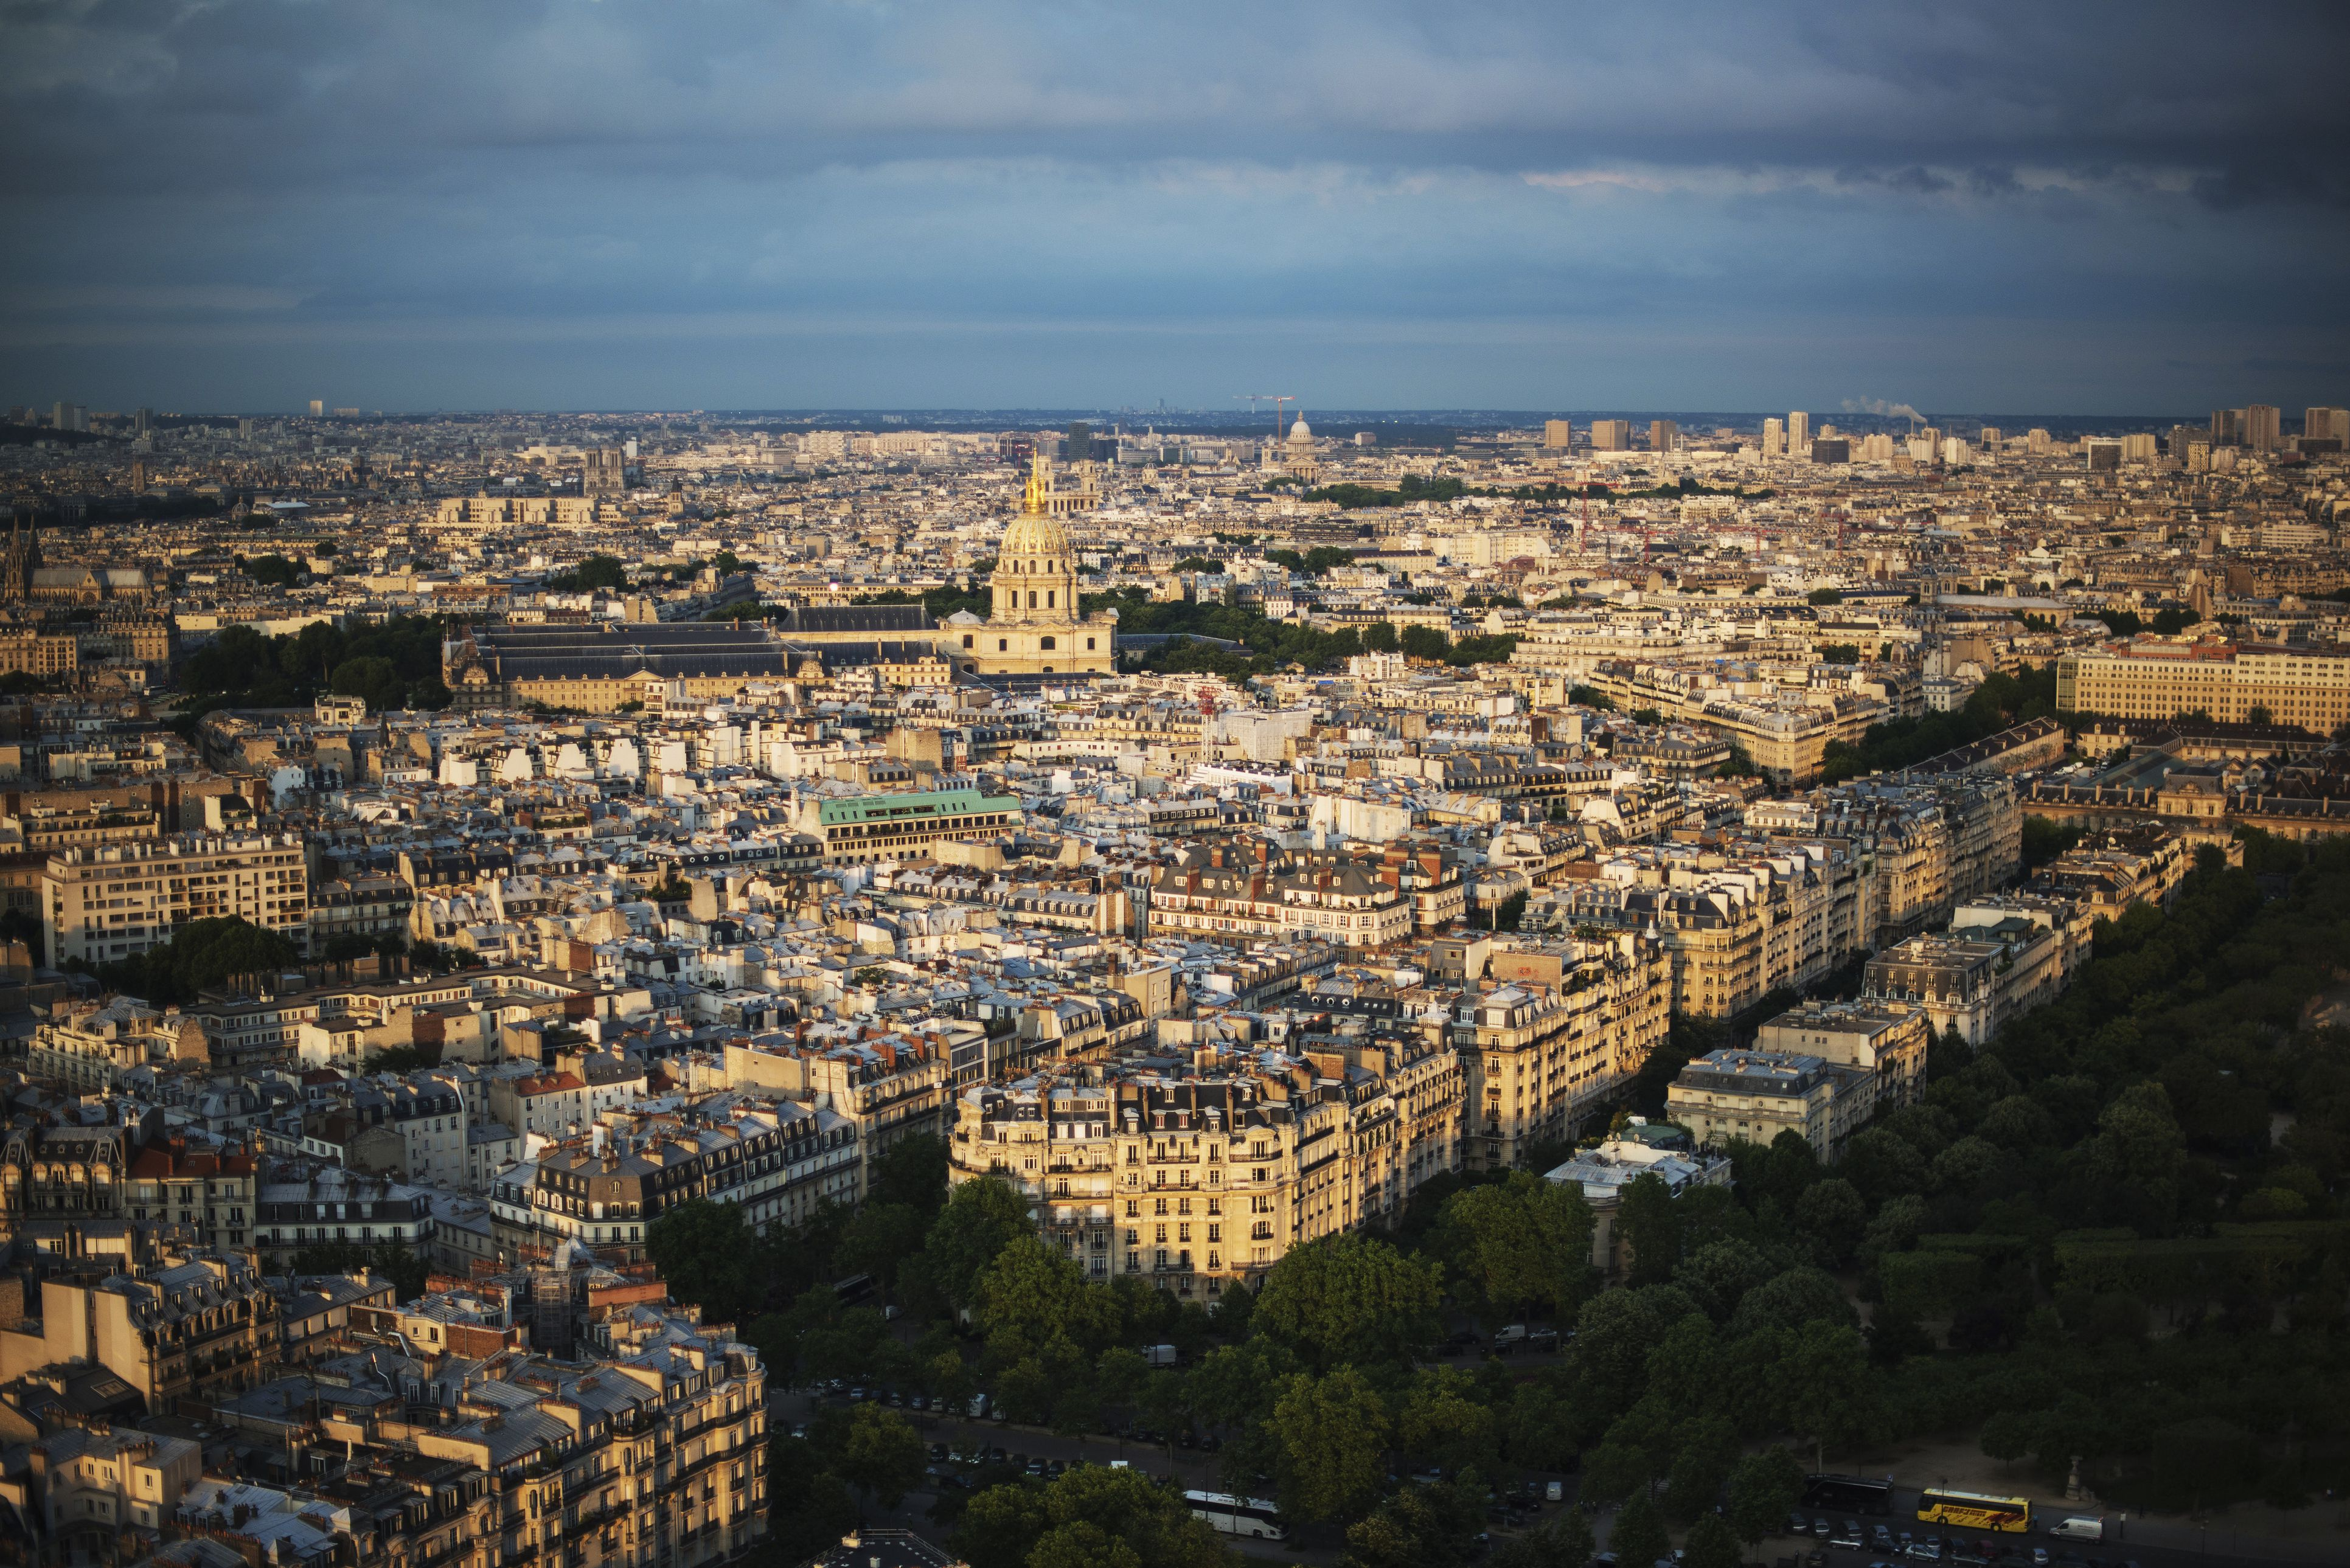 The view looking East at sunset from the top of the Eiffel Tower; Paris, France